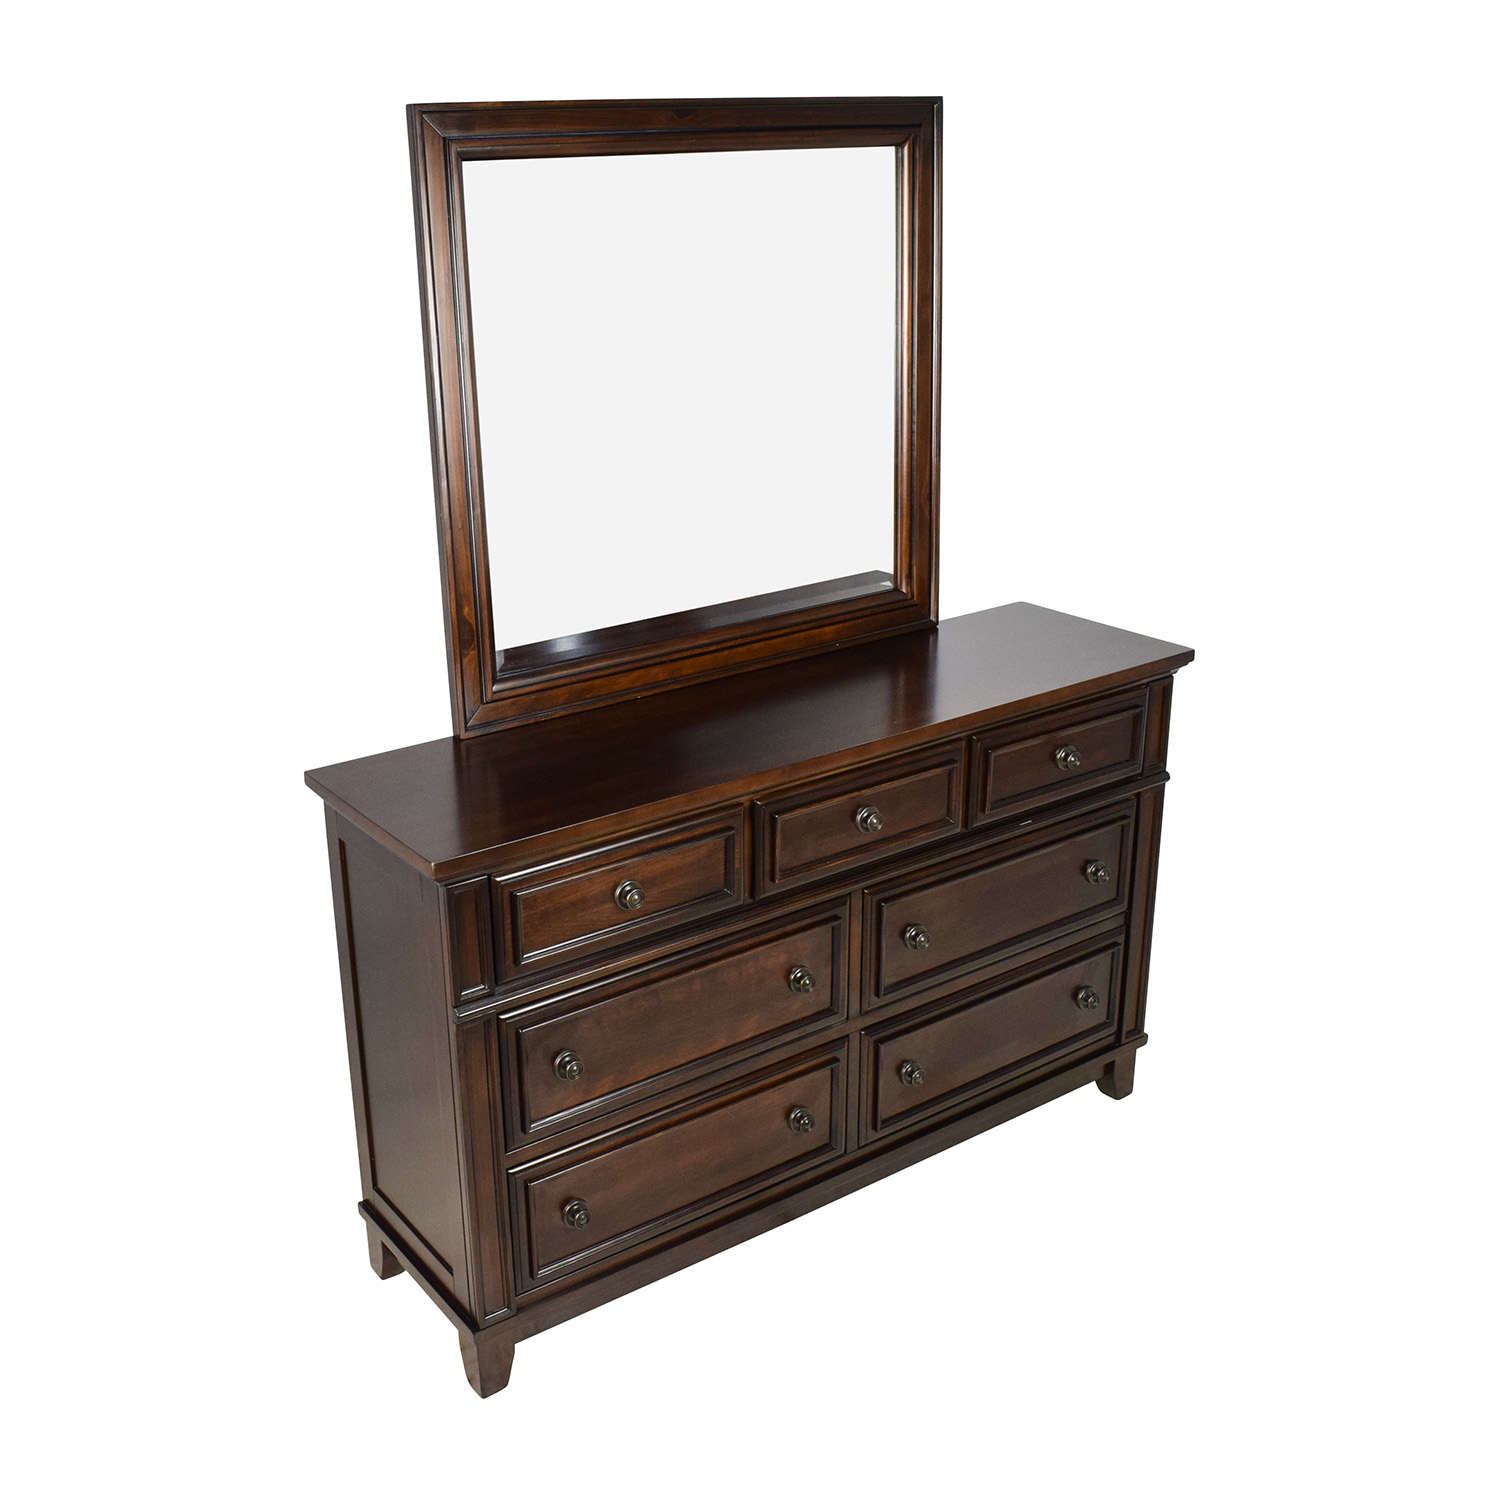 Harwich Cherry 7-Drawer Dresser and Mirror Harwich Cherry